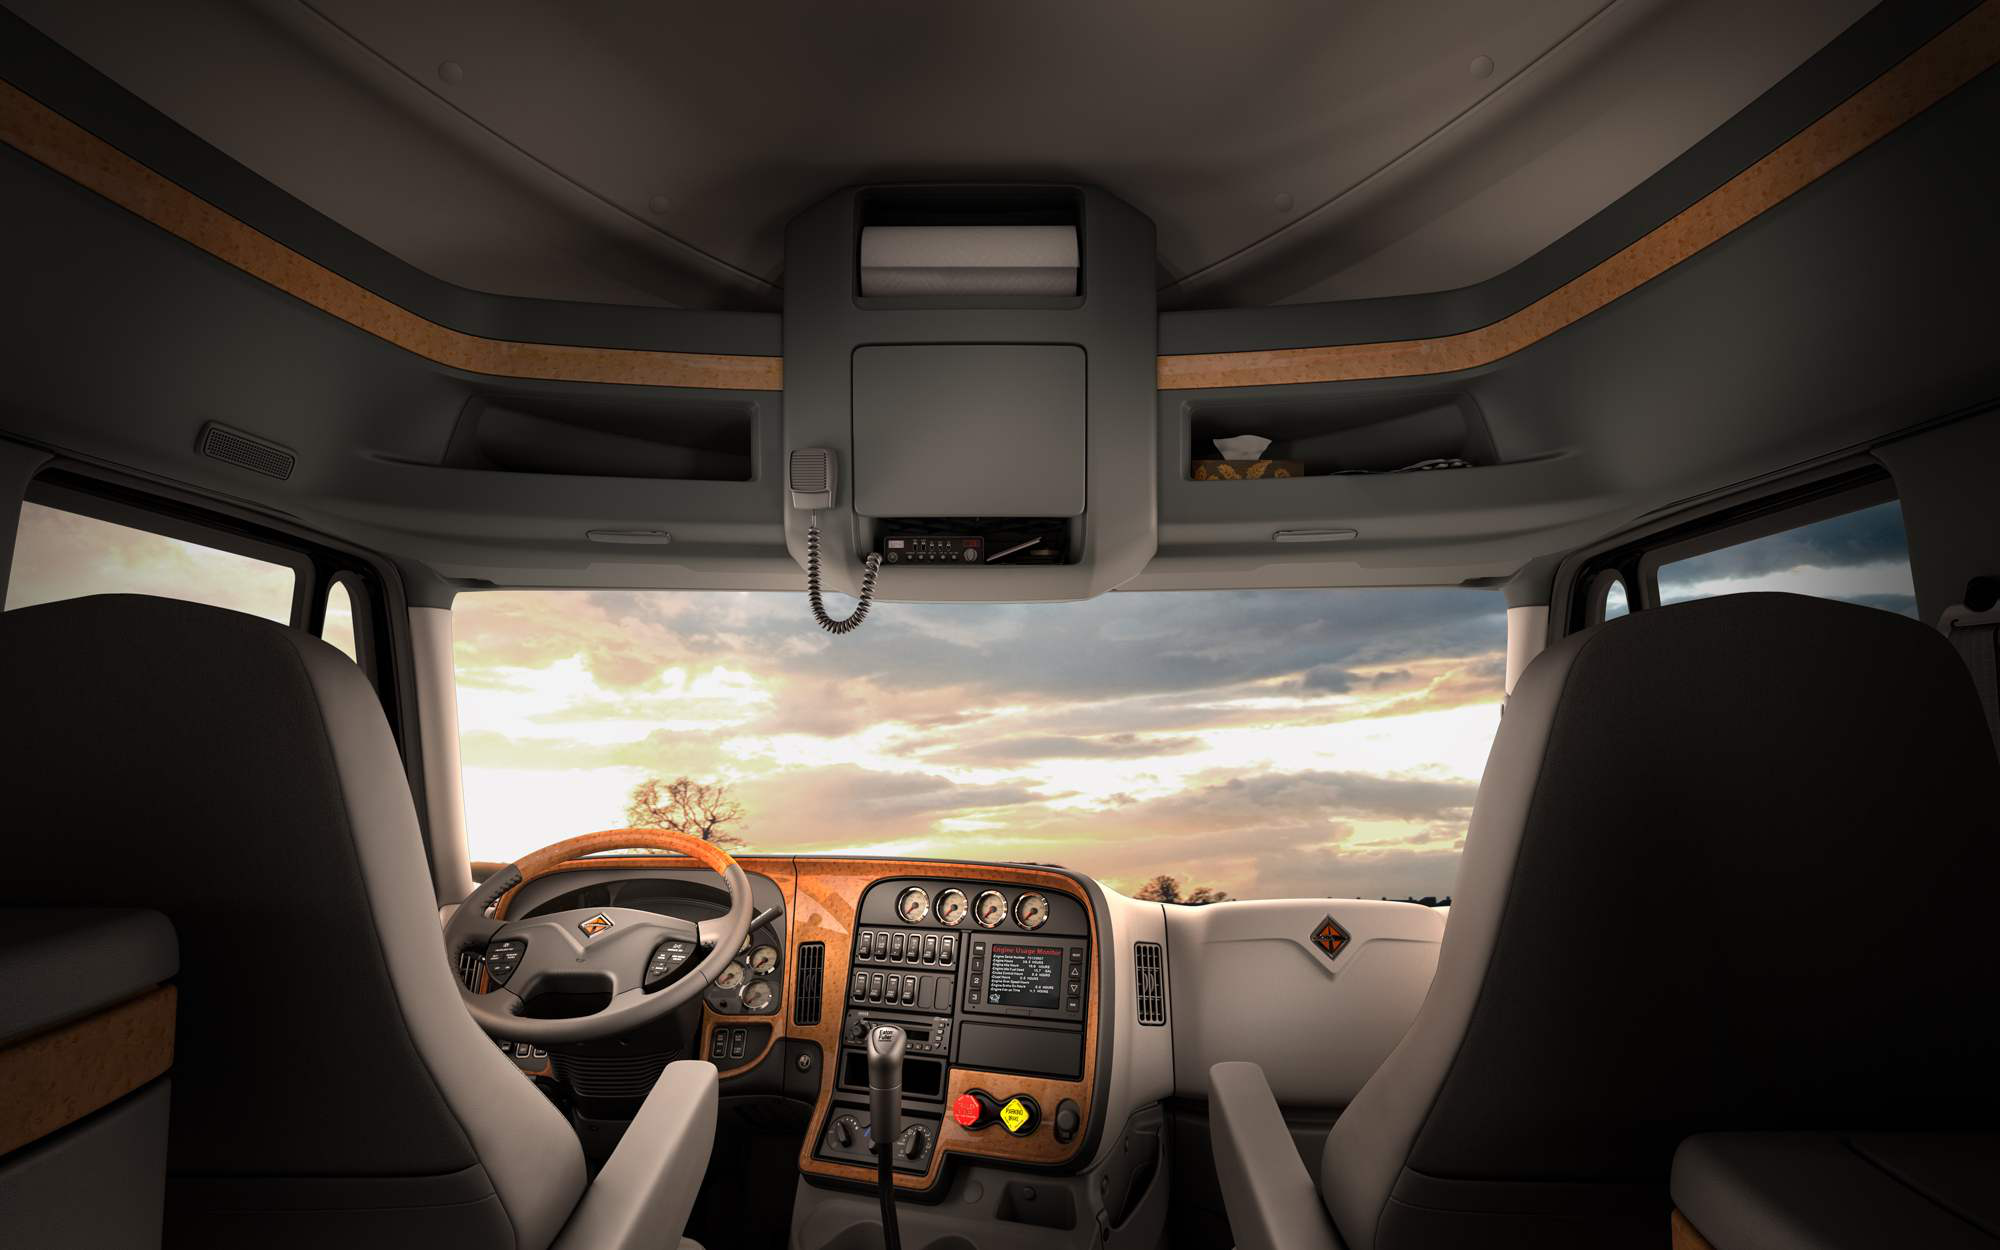 Connected And Comfortable Next Gen Trucks Changing The Way Drivers Live And Work On The Road